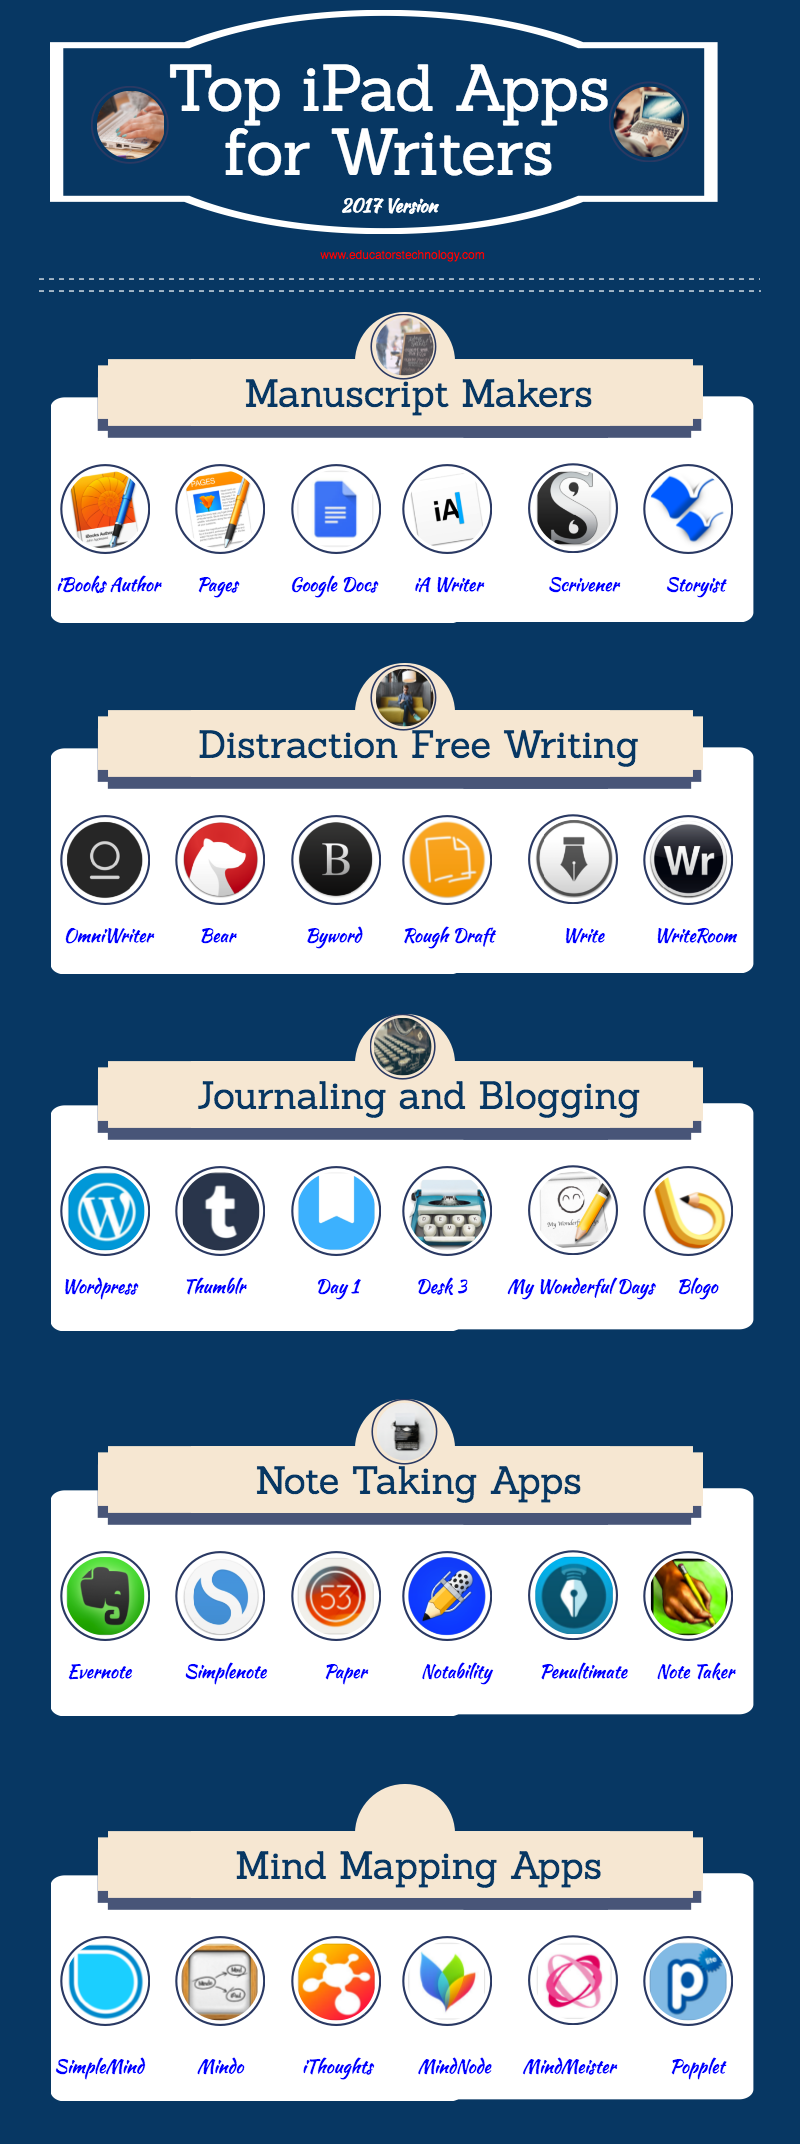 A Good Infographic Featuring Some of The Best iPad Apps